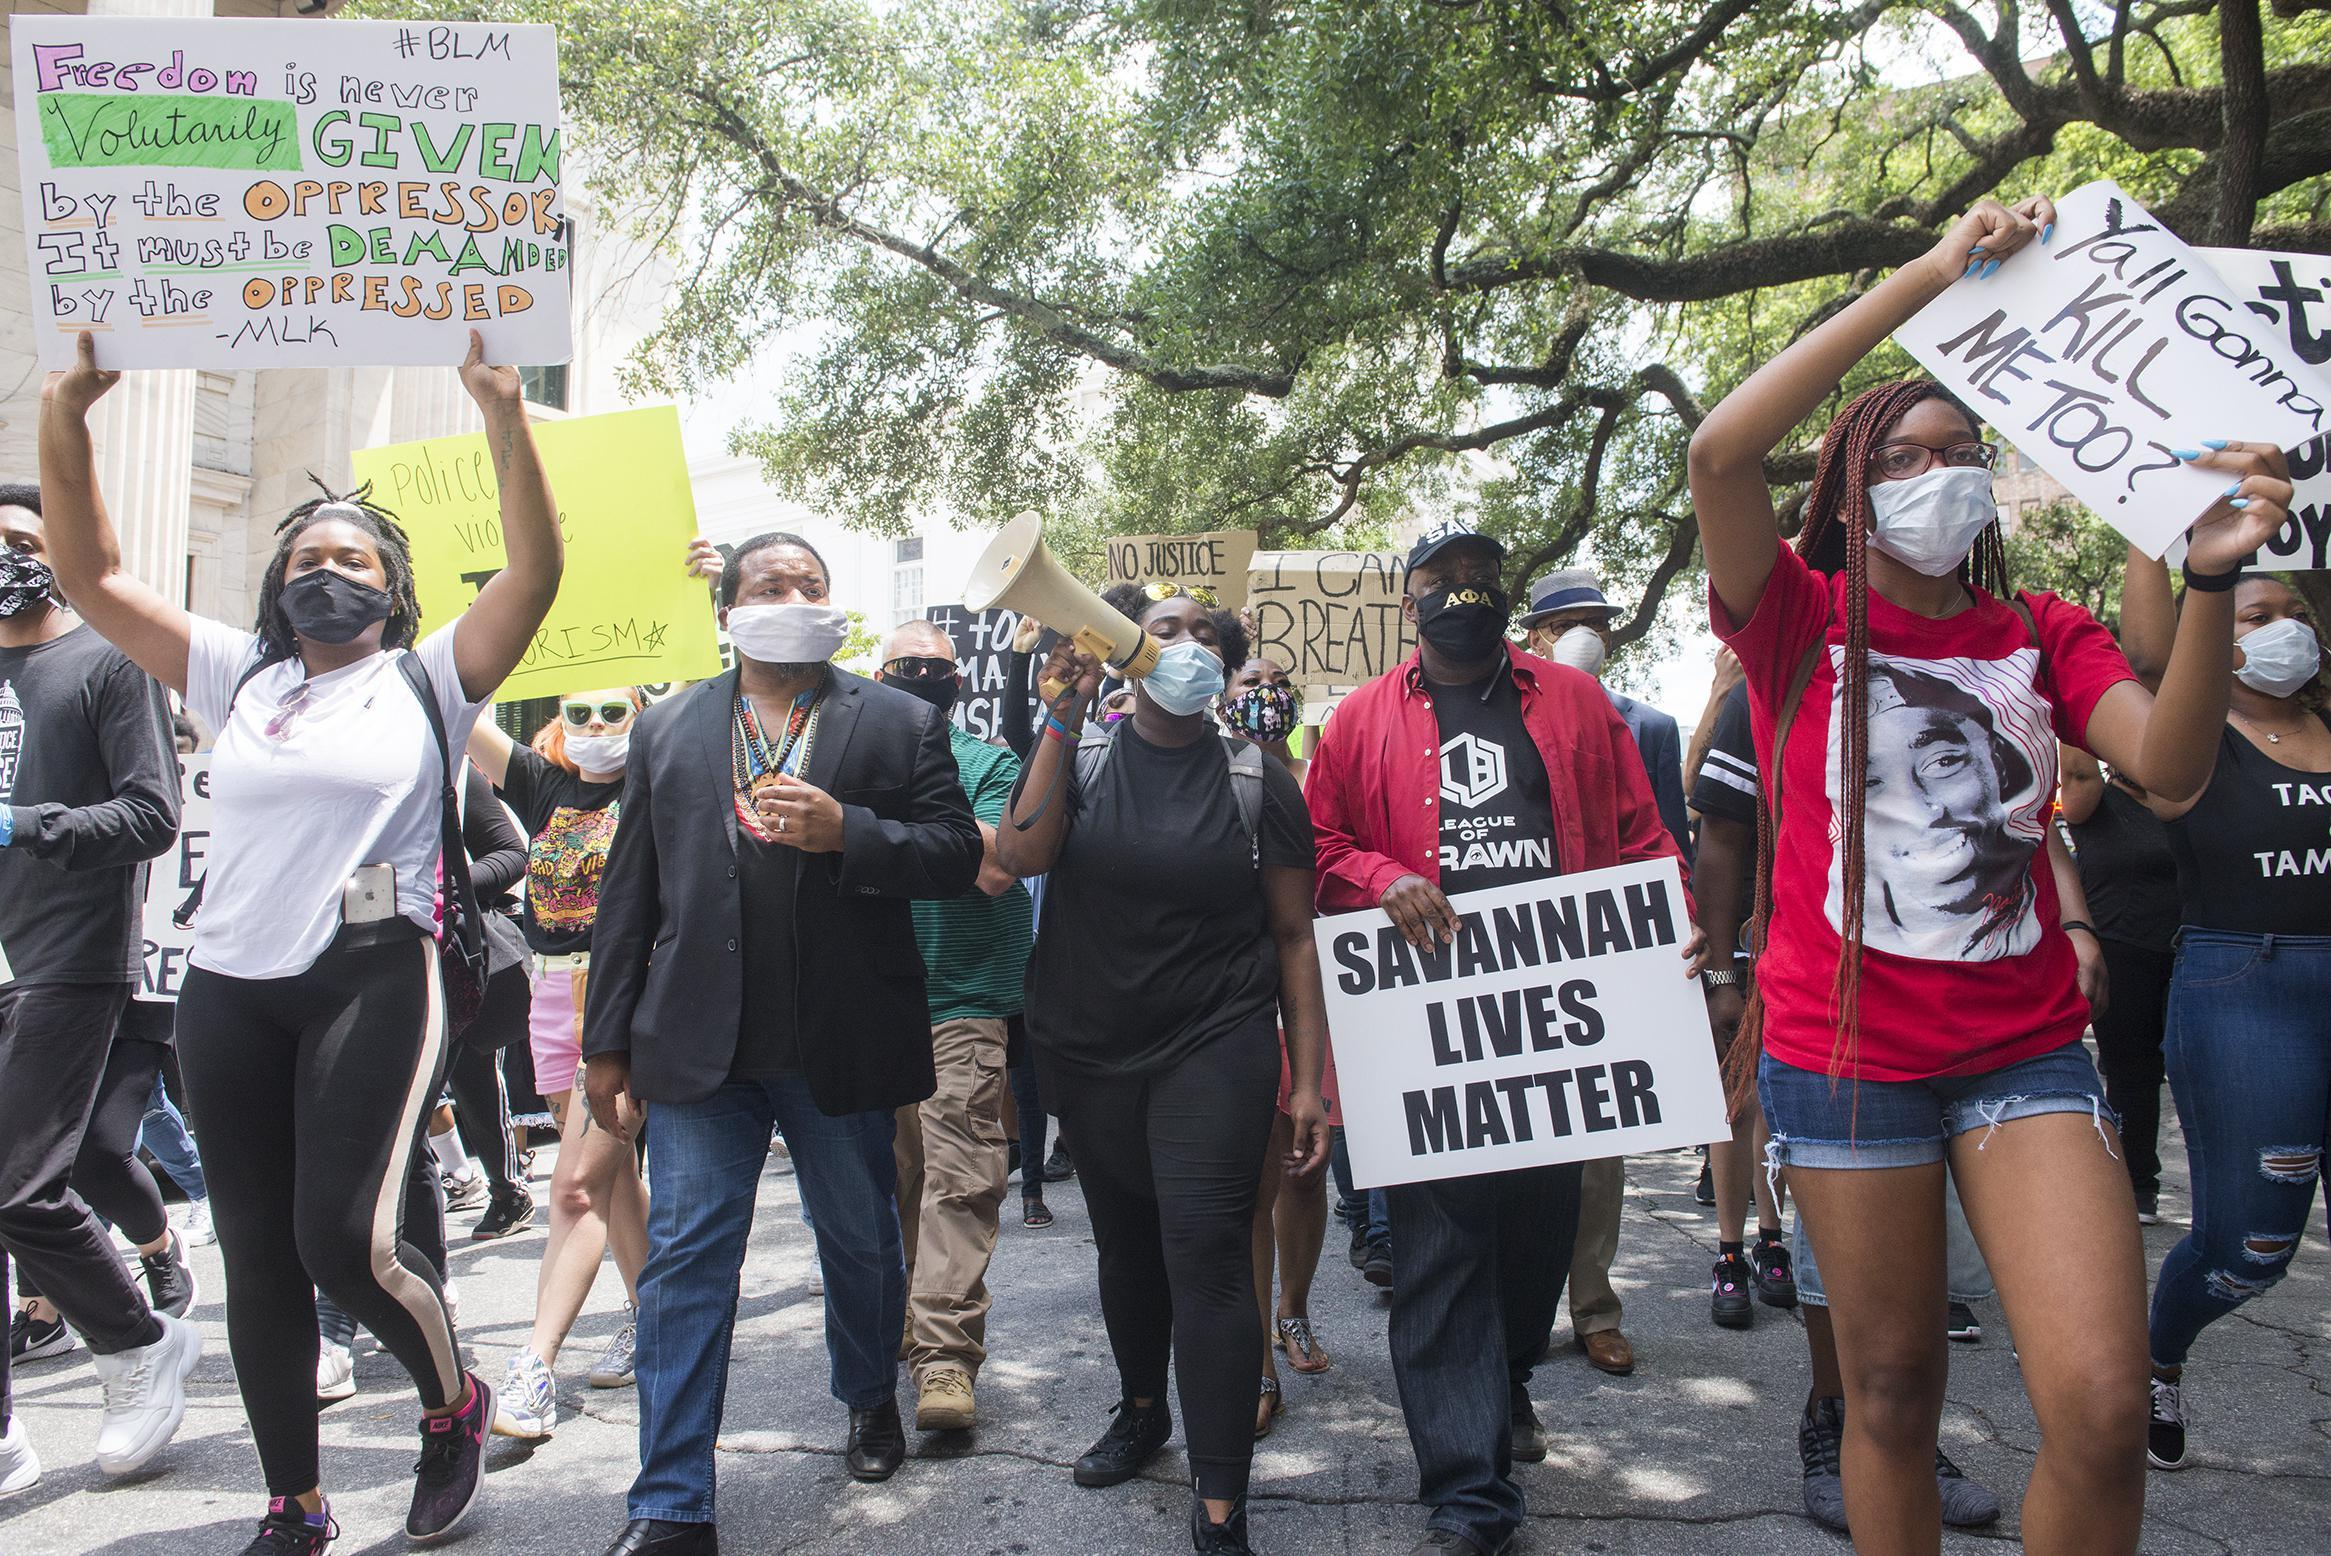 A crowd of protesters march from Johnson Square to Savannah City Hall on May 31.